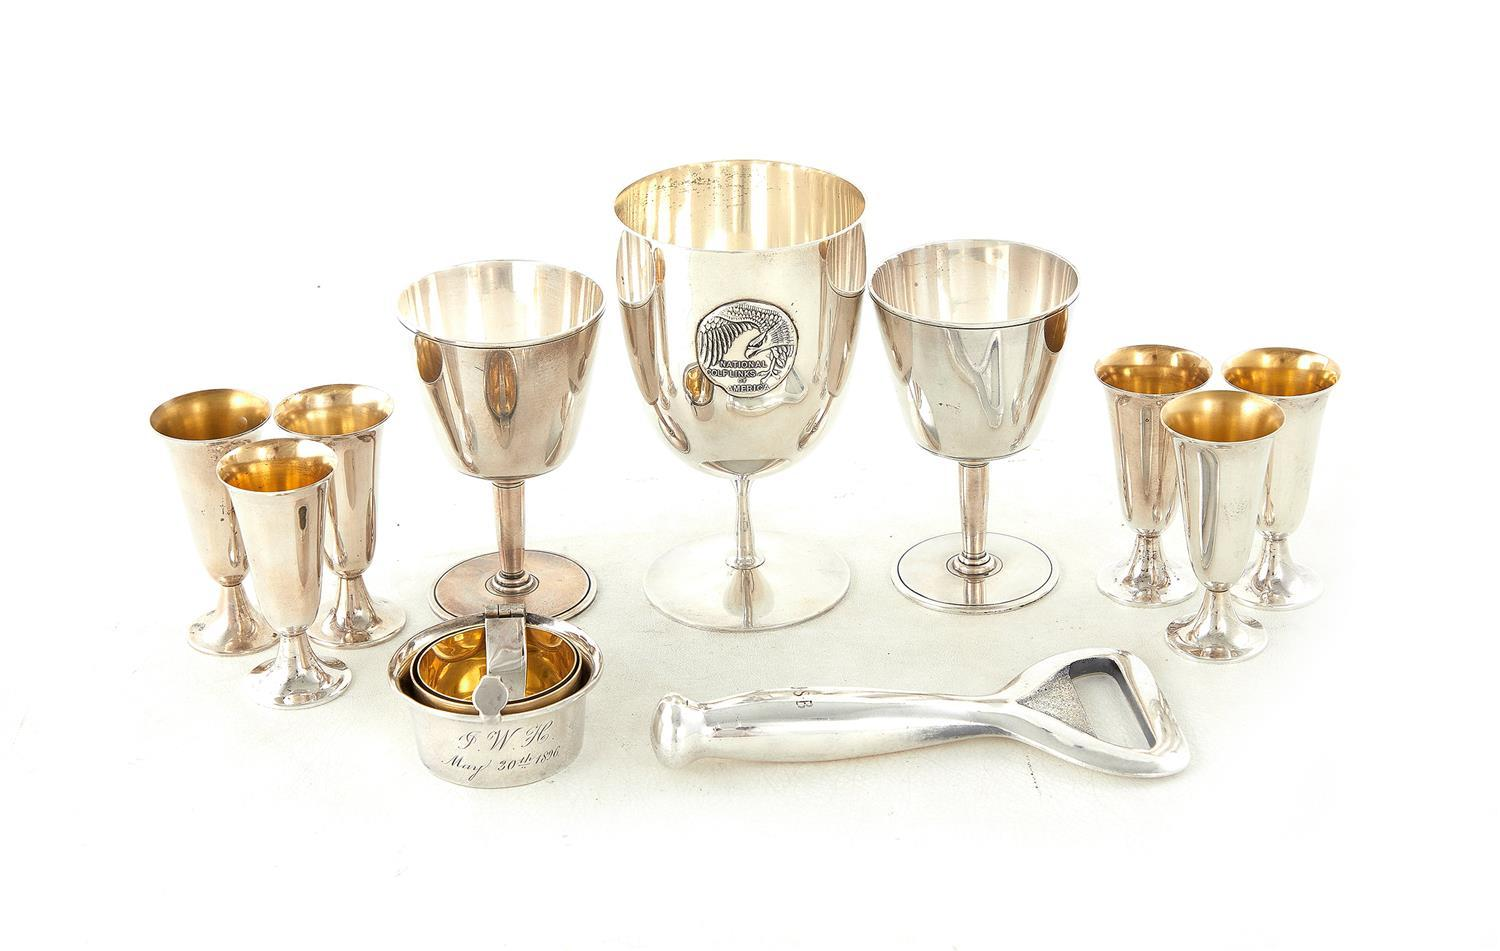 Tiffany & Co silver drinking vessels and bottle opener (11pcs)